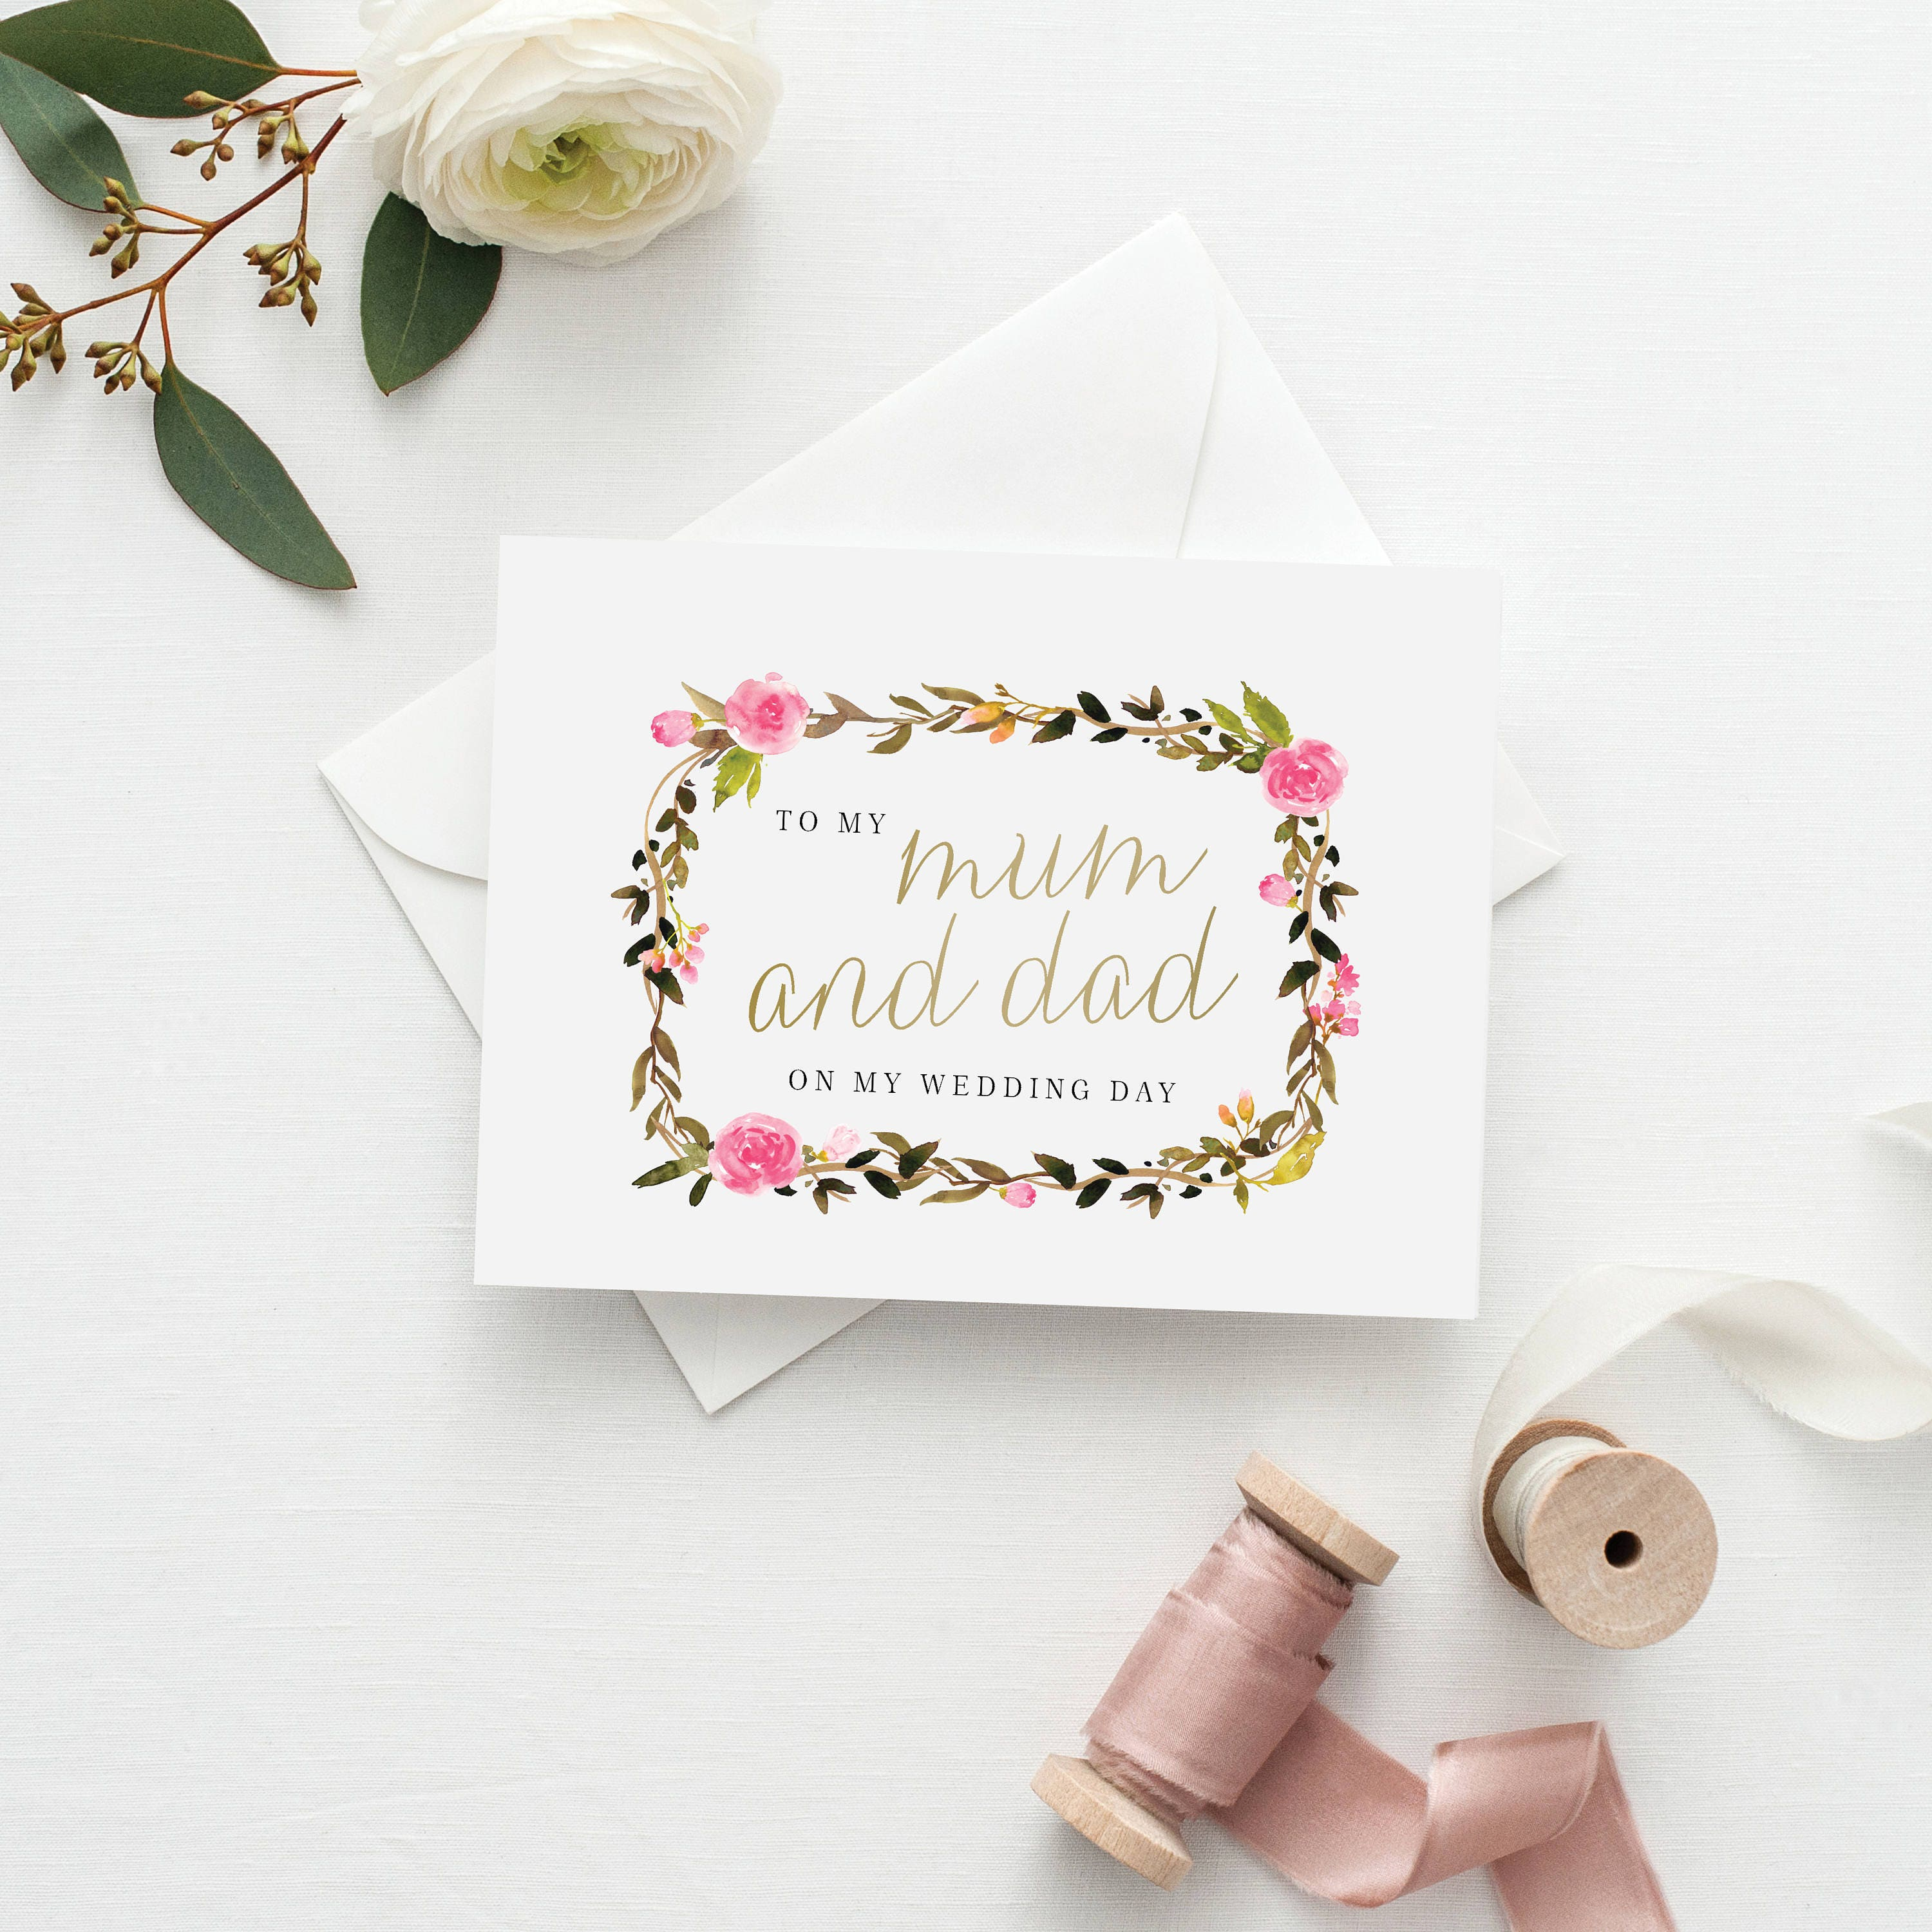 Printable 5x7 To my Mom & Dad Card | To My Parents Wedding Card ...